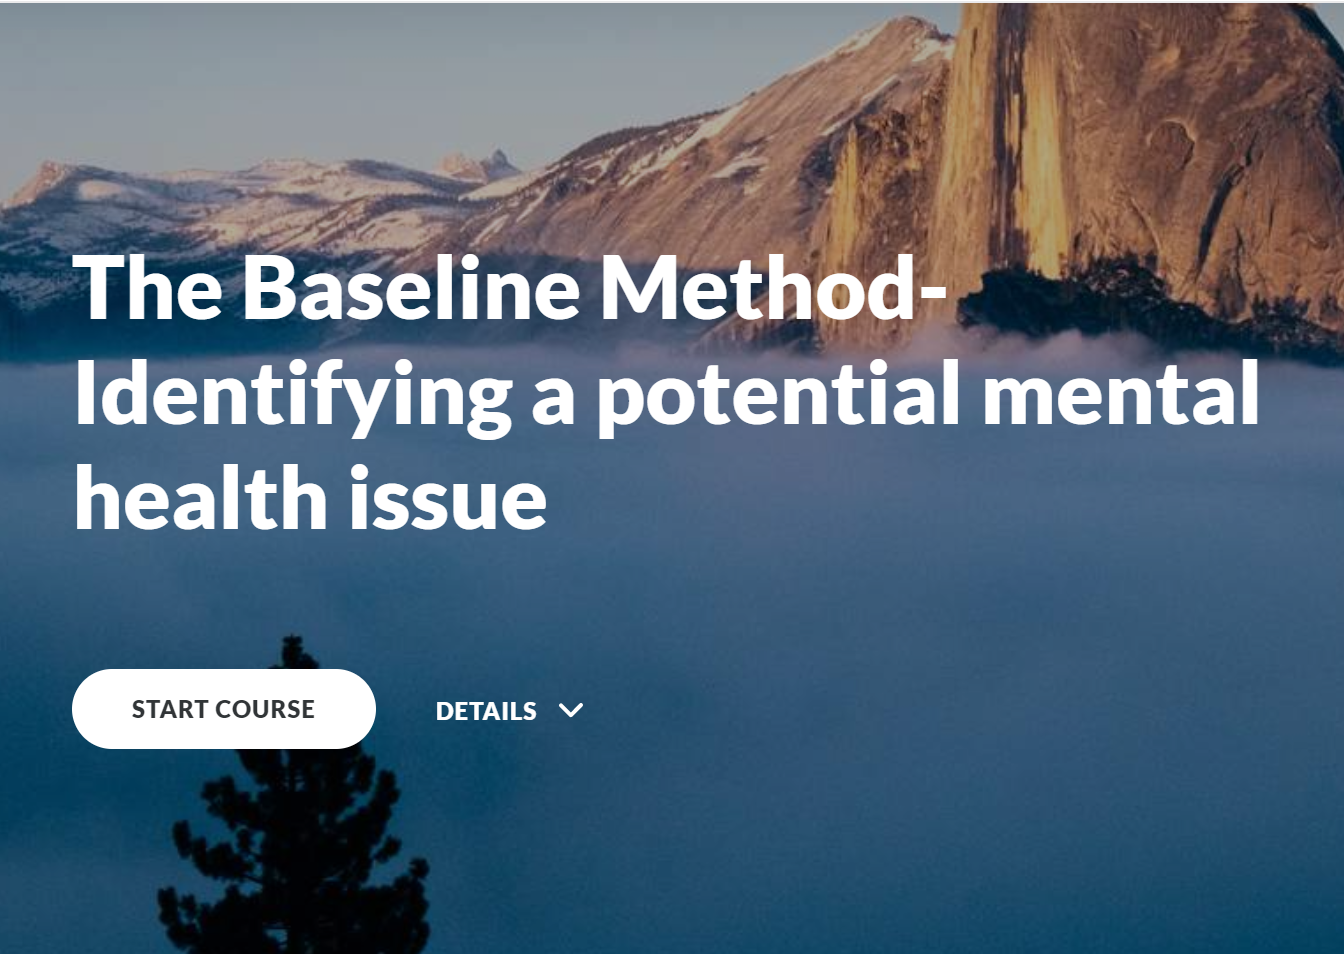 The Baseline Method: Identifying a potential mental health issue image